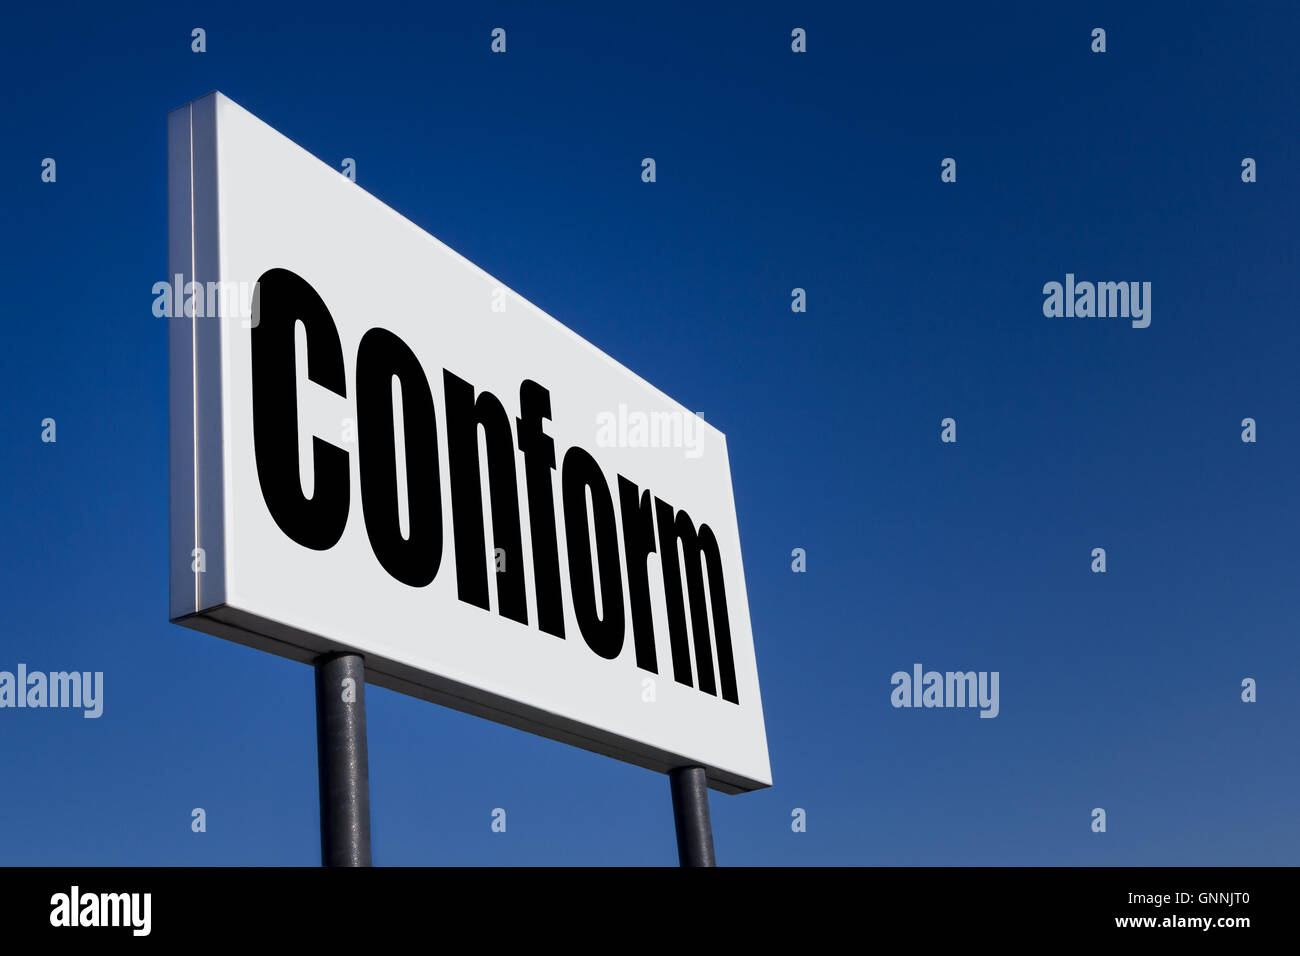 Big ad panel, embossed with the message 'CONFORM', against blue sky. - Stock Image